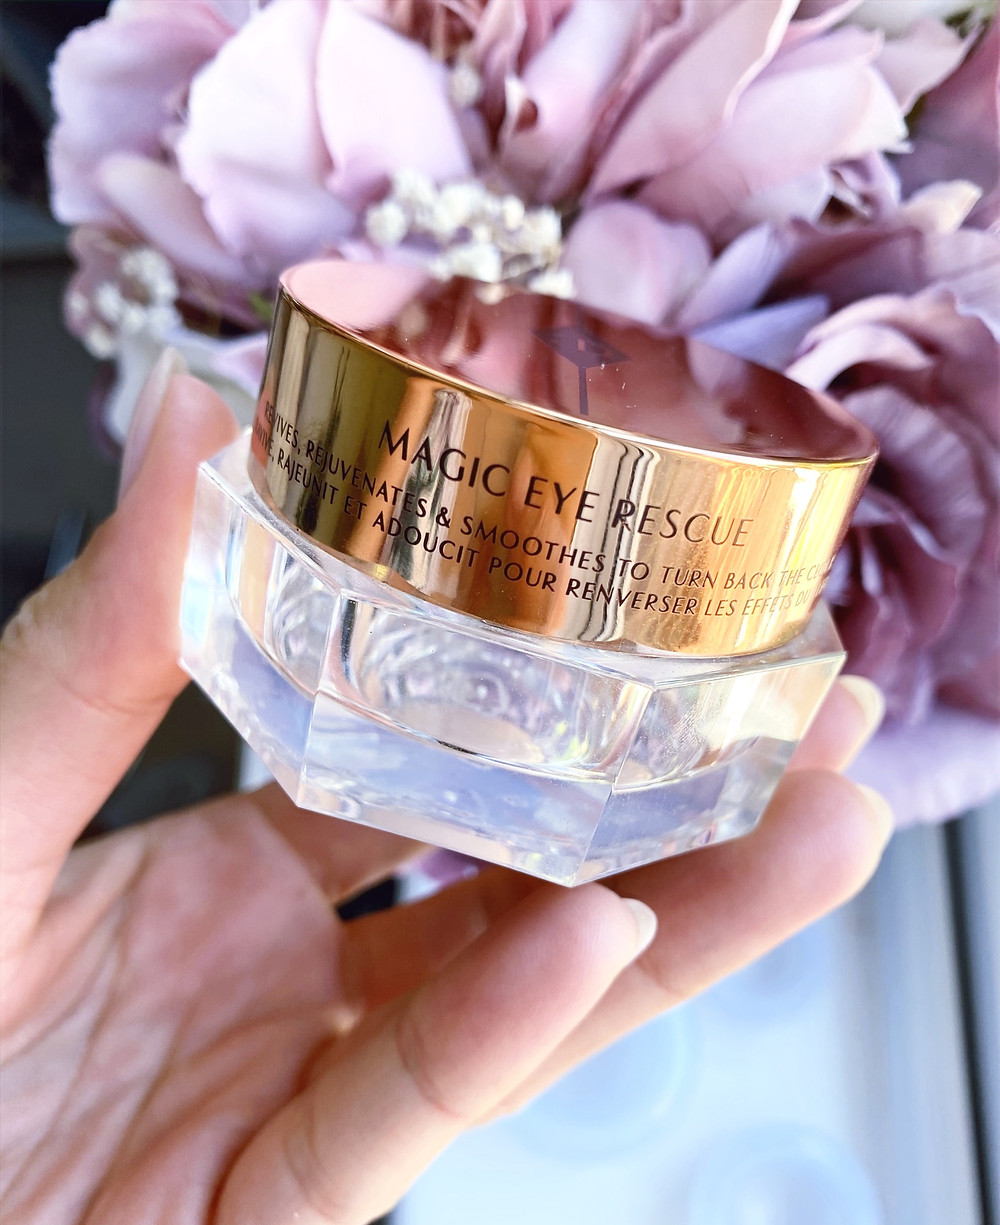 MAKEUP ARTIST'S 2020 BEAUTY PICKS. MAGIC RESQUE EYE CREME